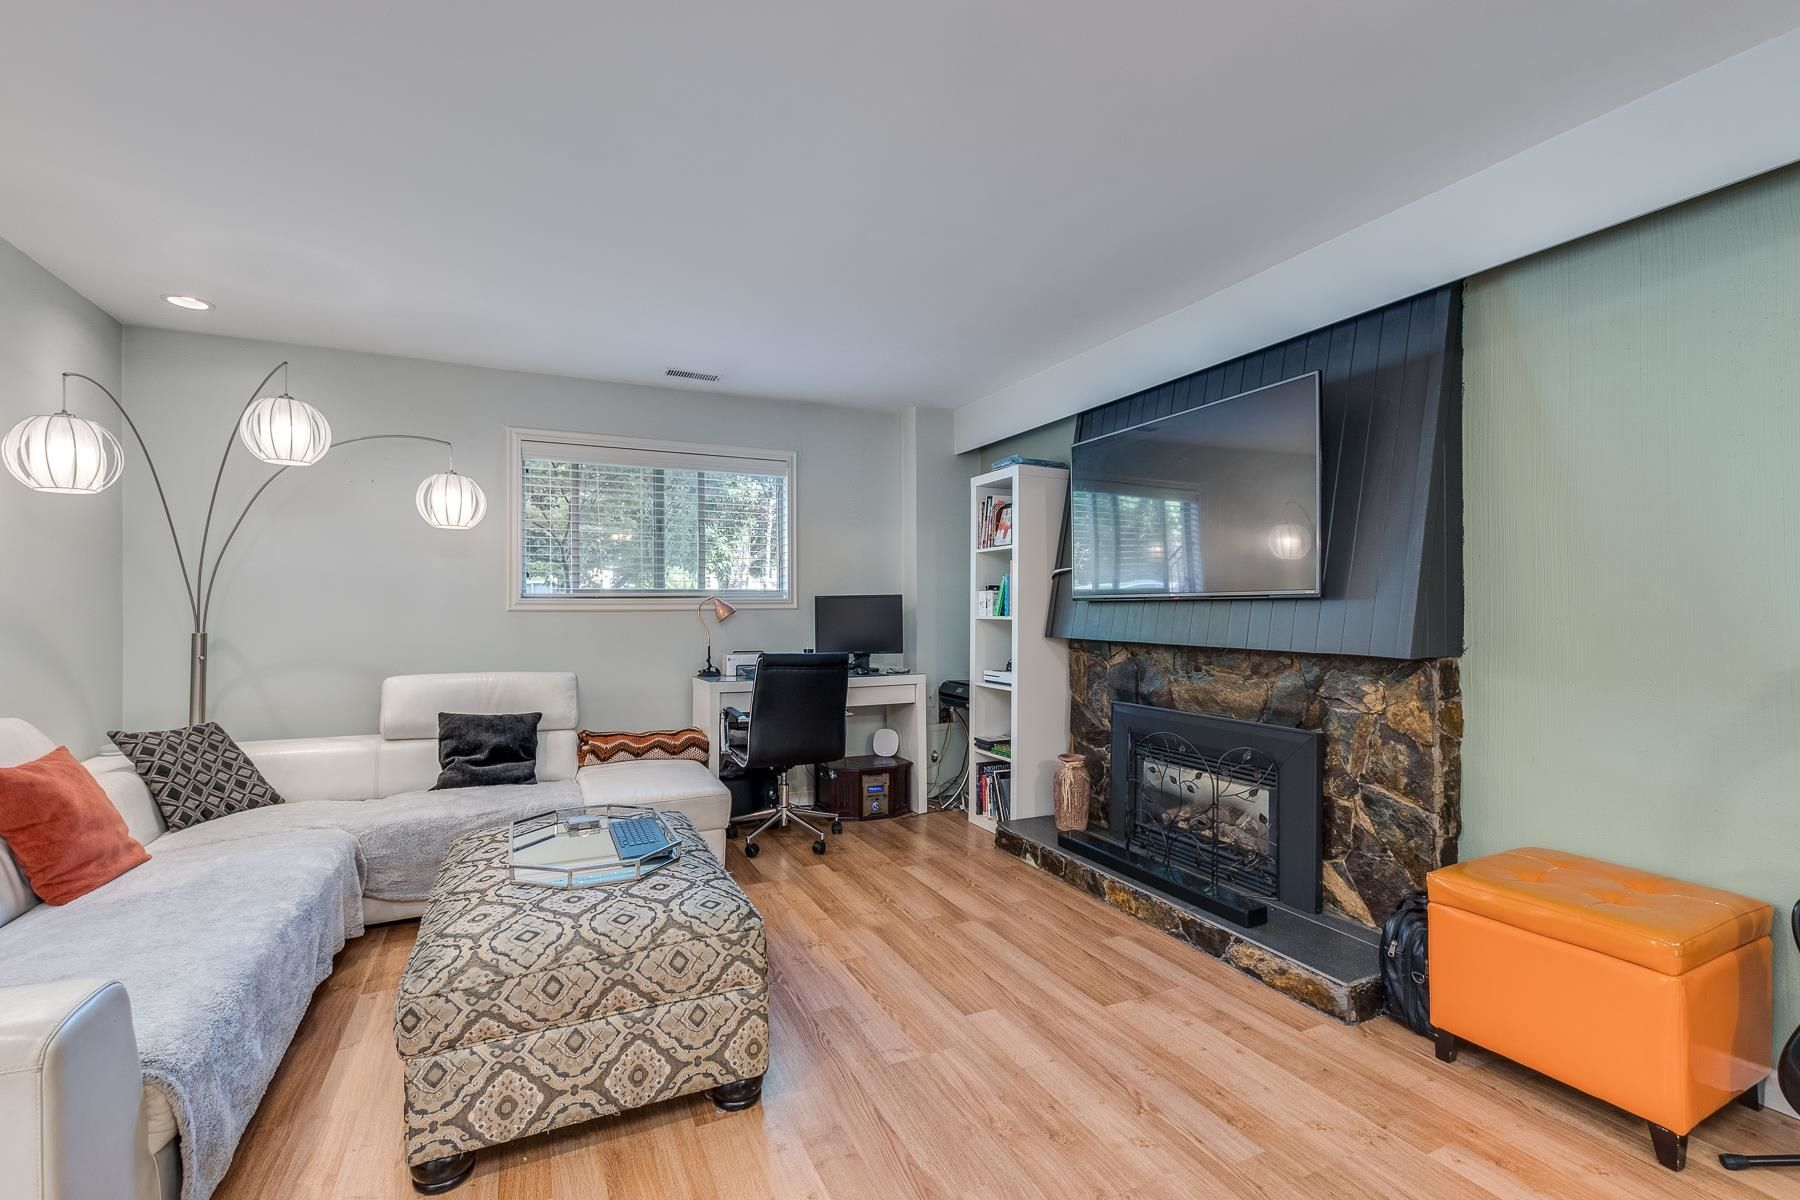 Photo 23: Photos: 3671 SOMERSET Street in Port Coquitlam: Lincoln Park PQ House for sale : MLS®# R2610216